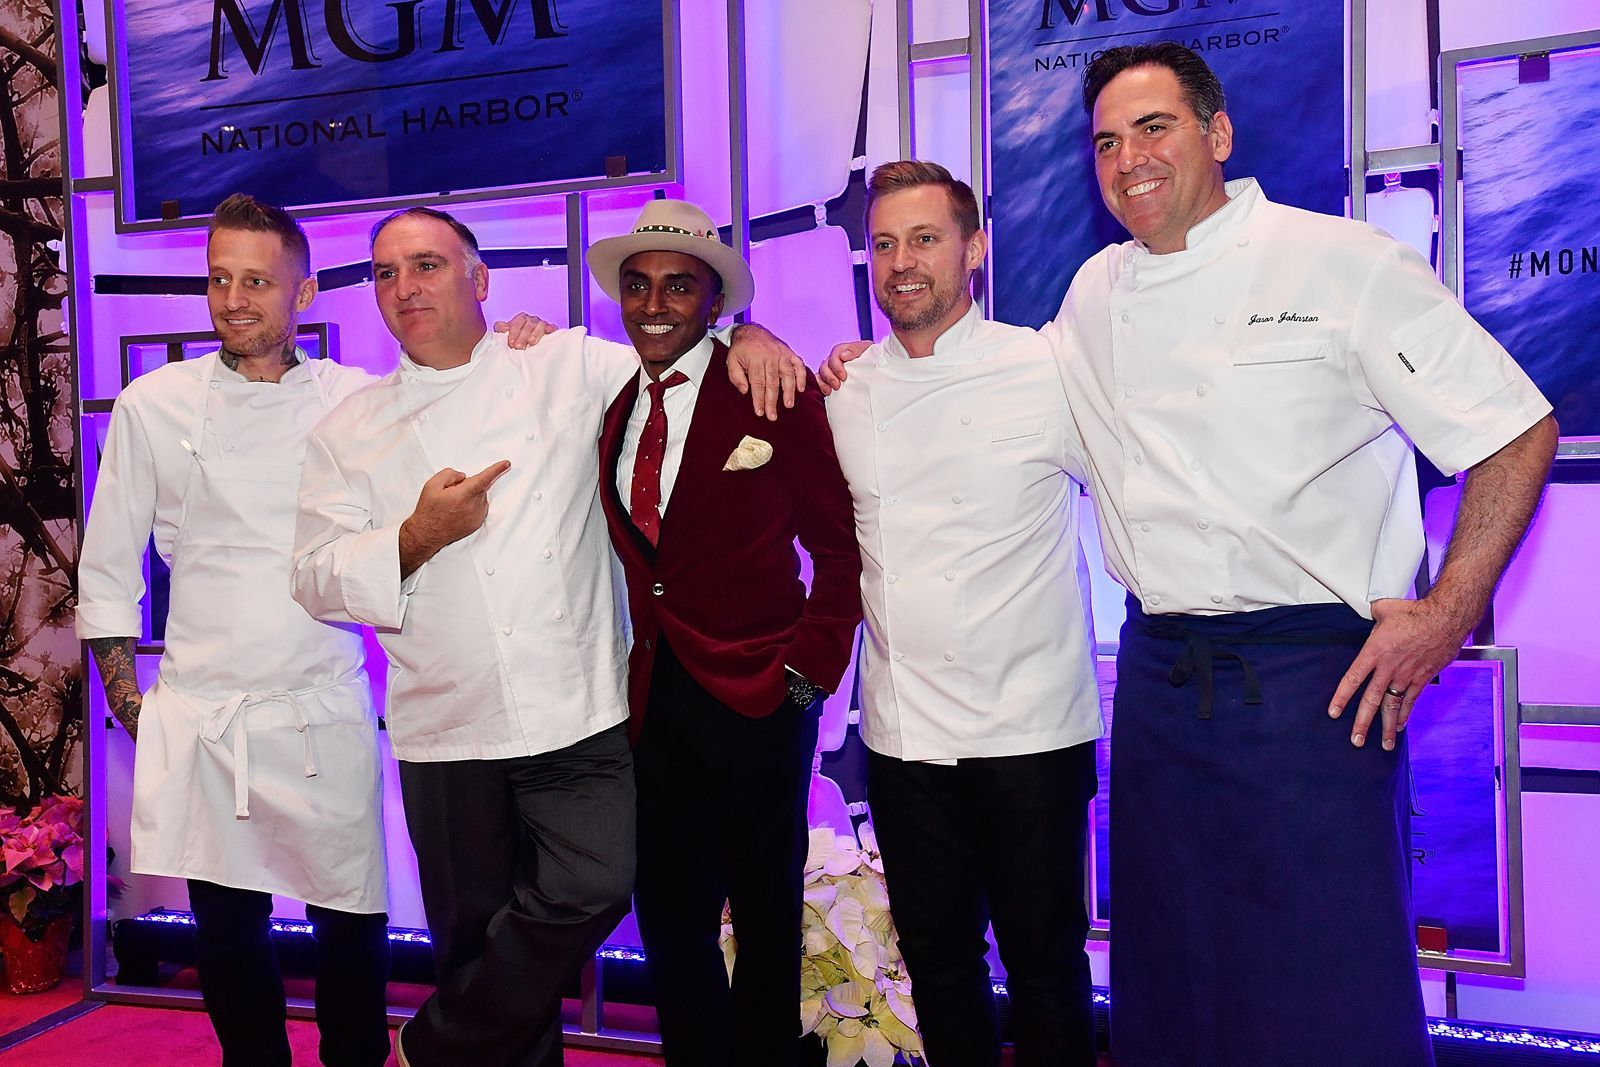 NATIONAL HARBOR, MD - DECEMBER 08:  (L-R) Michael Voltaggio, Jose Andres, Marcus Samuelsson, Bryan Voltaggio, and Jason Johnston attend the MGM National Harbor Grand Opening Gala on December 8, 2016 in National Harbor, Maryland.  (Photo by Larry French/Getty Images for MGM National Harbor)